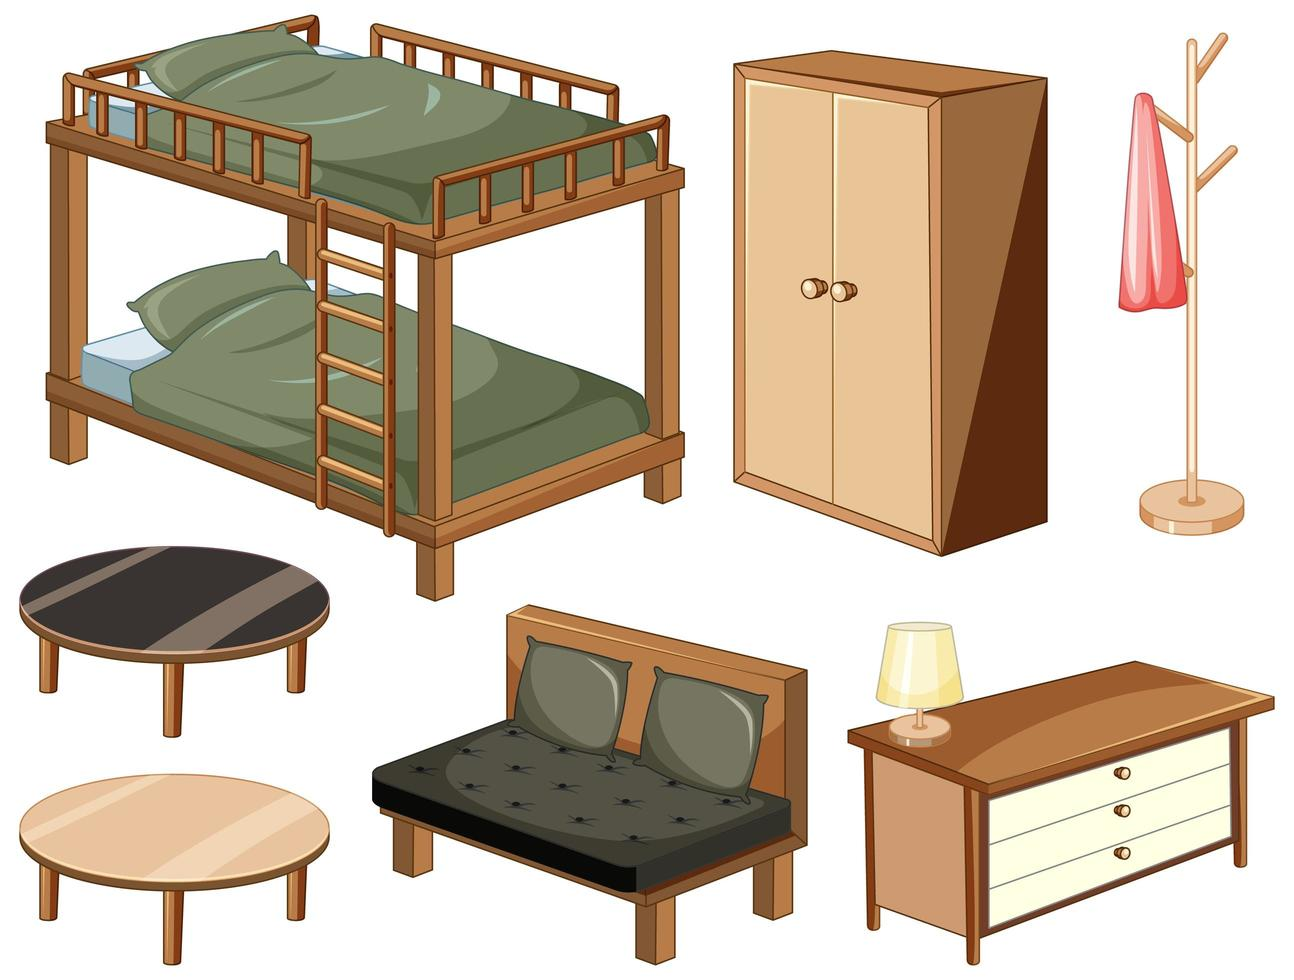 Bedroom furniture objects isolated on white background vector